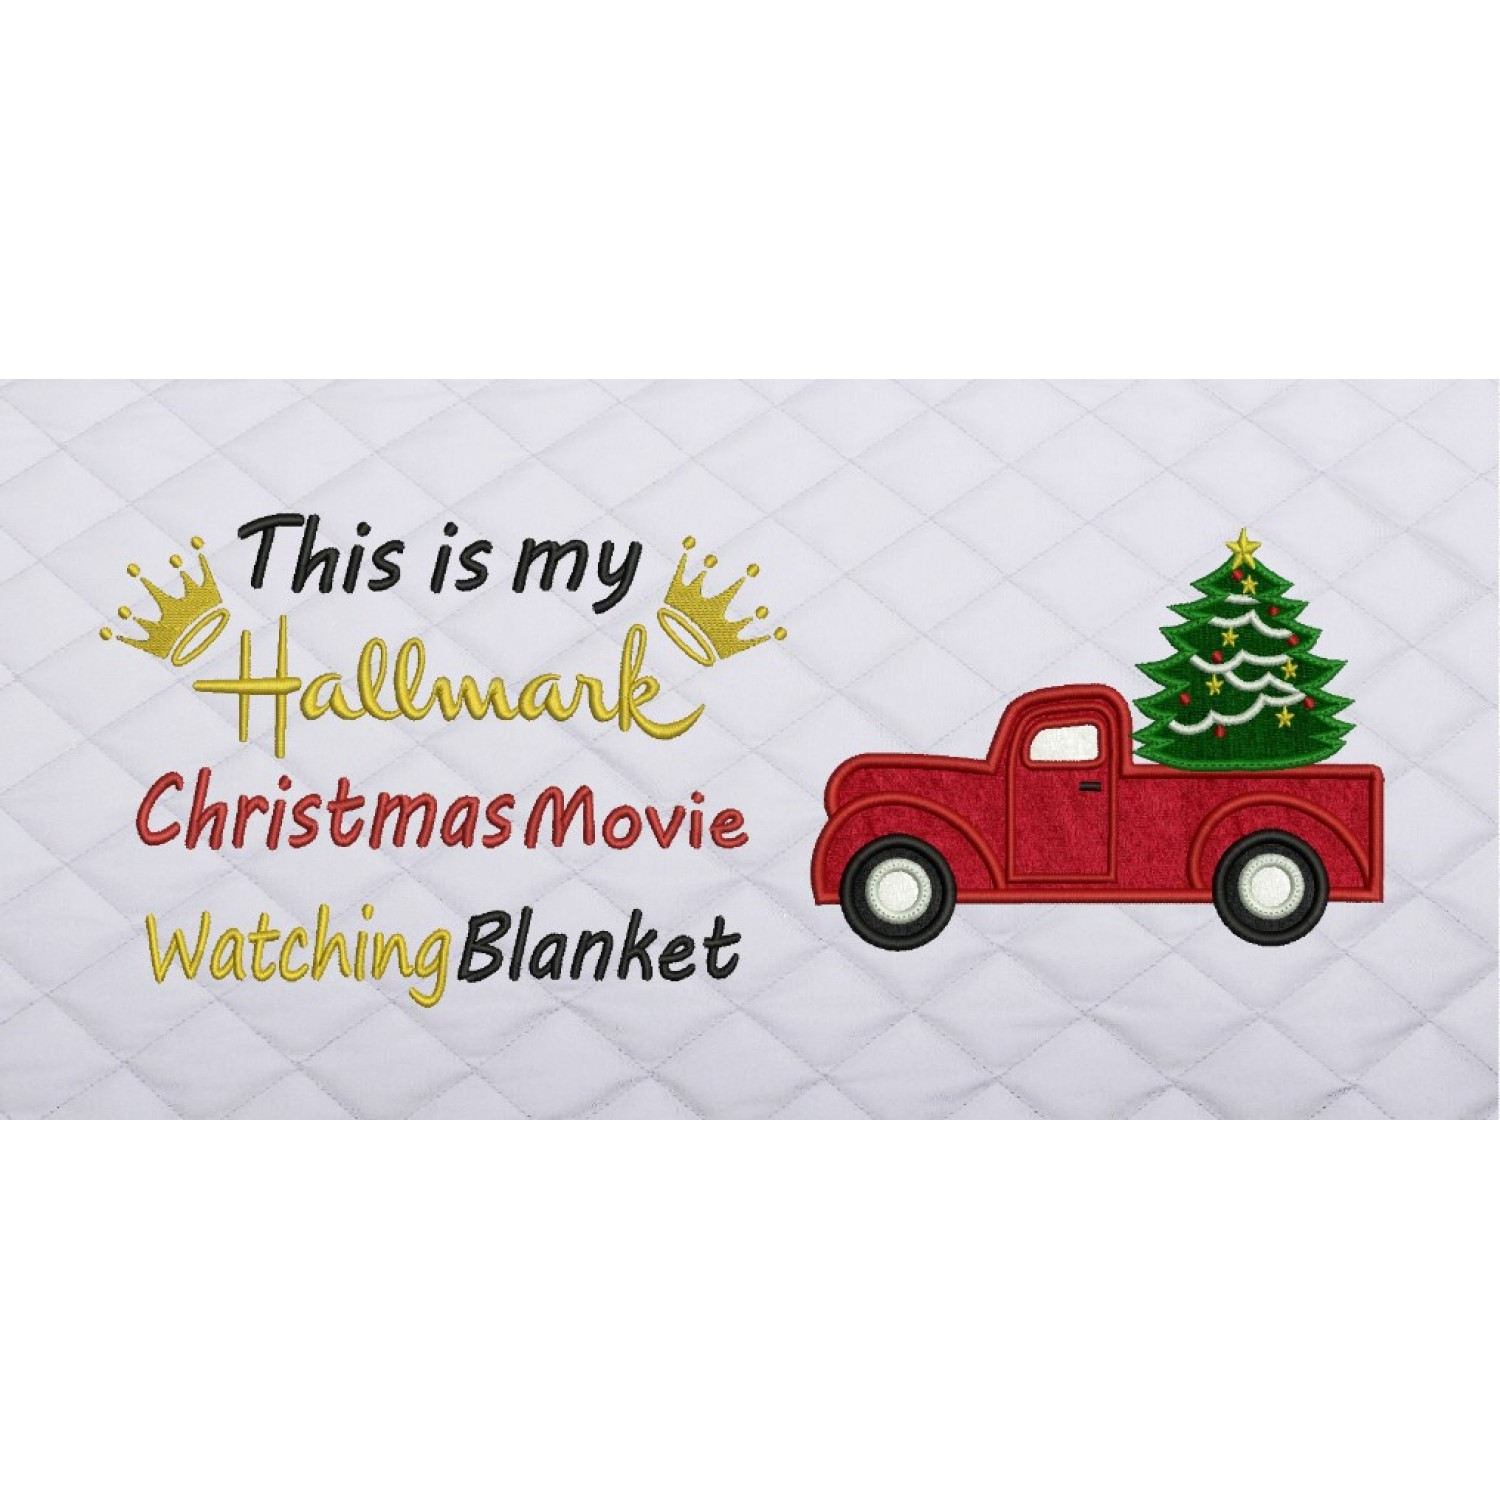 Christmas Truck with this is my hallmark